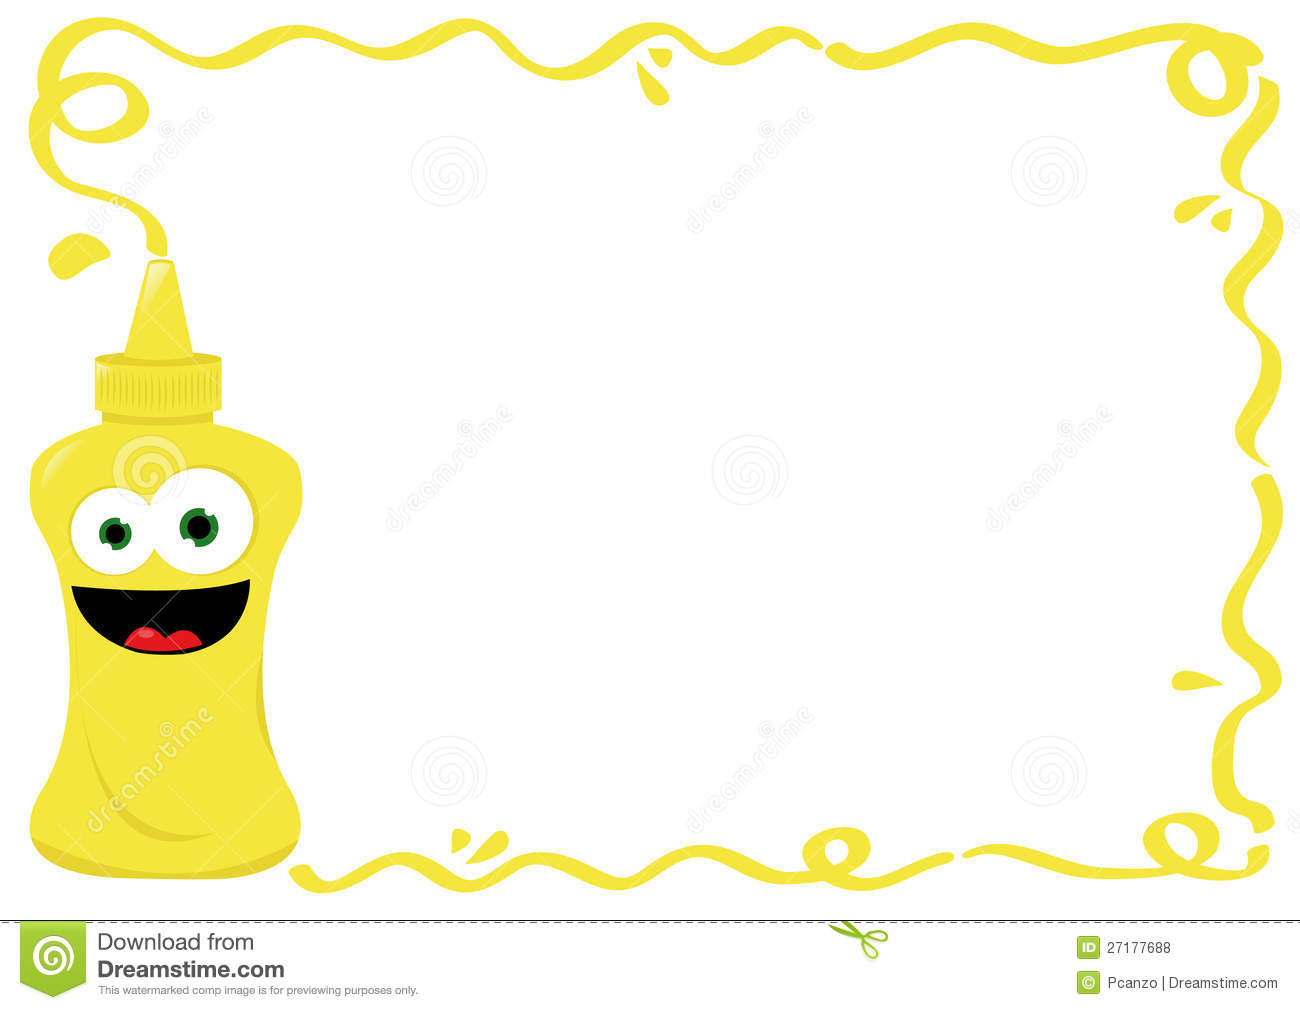 Royalty Free Stock Photos Funny Mustard Frame Image27177688 also Boxer Emoticon Image21262154 also Royalty Free Stock Photography Recycling Glass Image26945527 together with 9993694 furthermore 29982720. on funny cartoon mouth